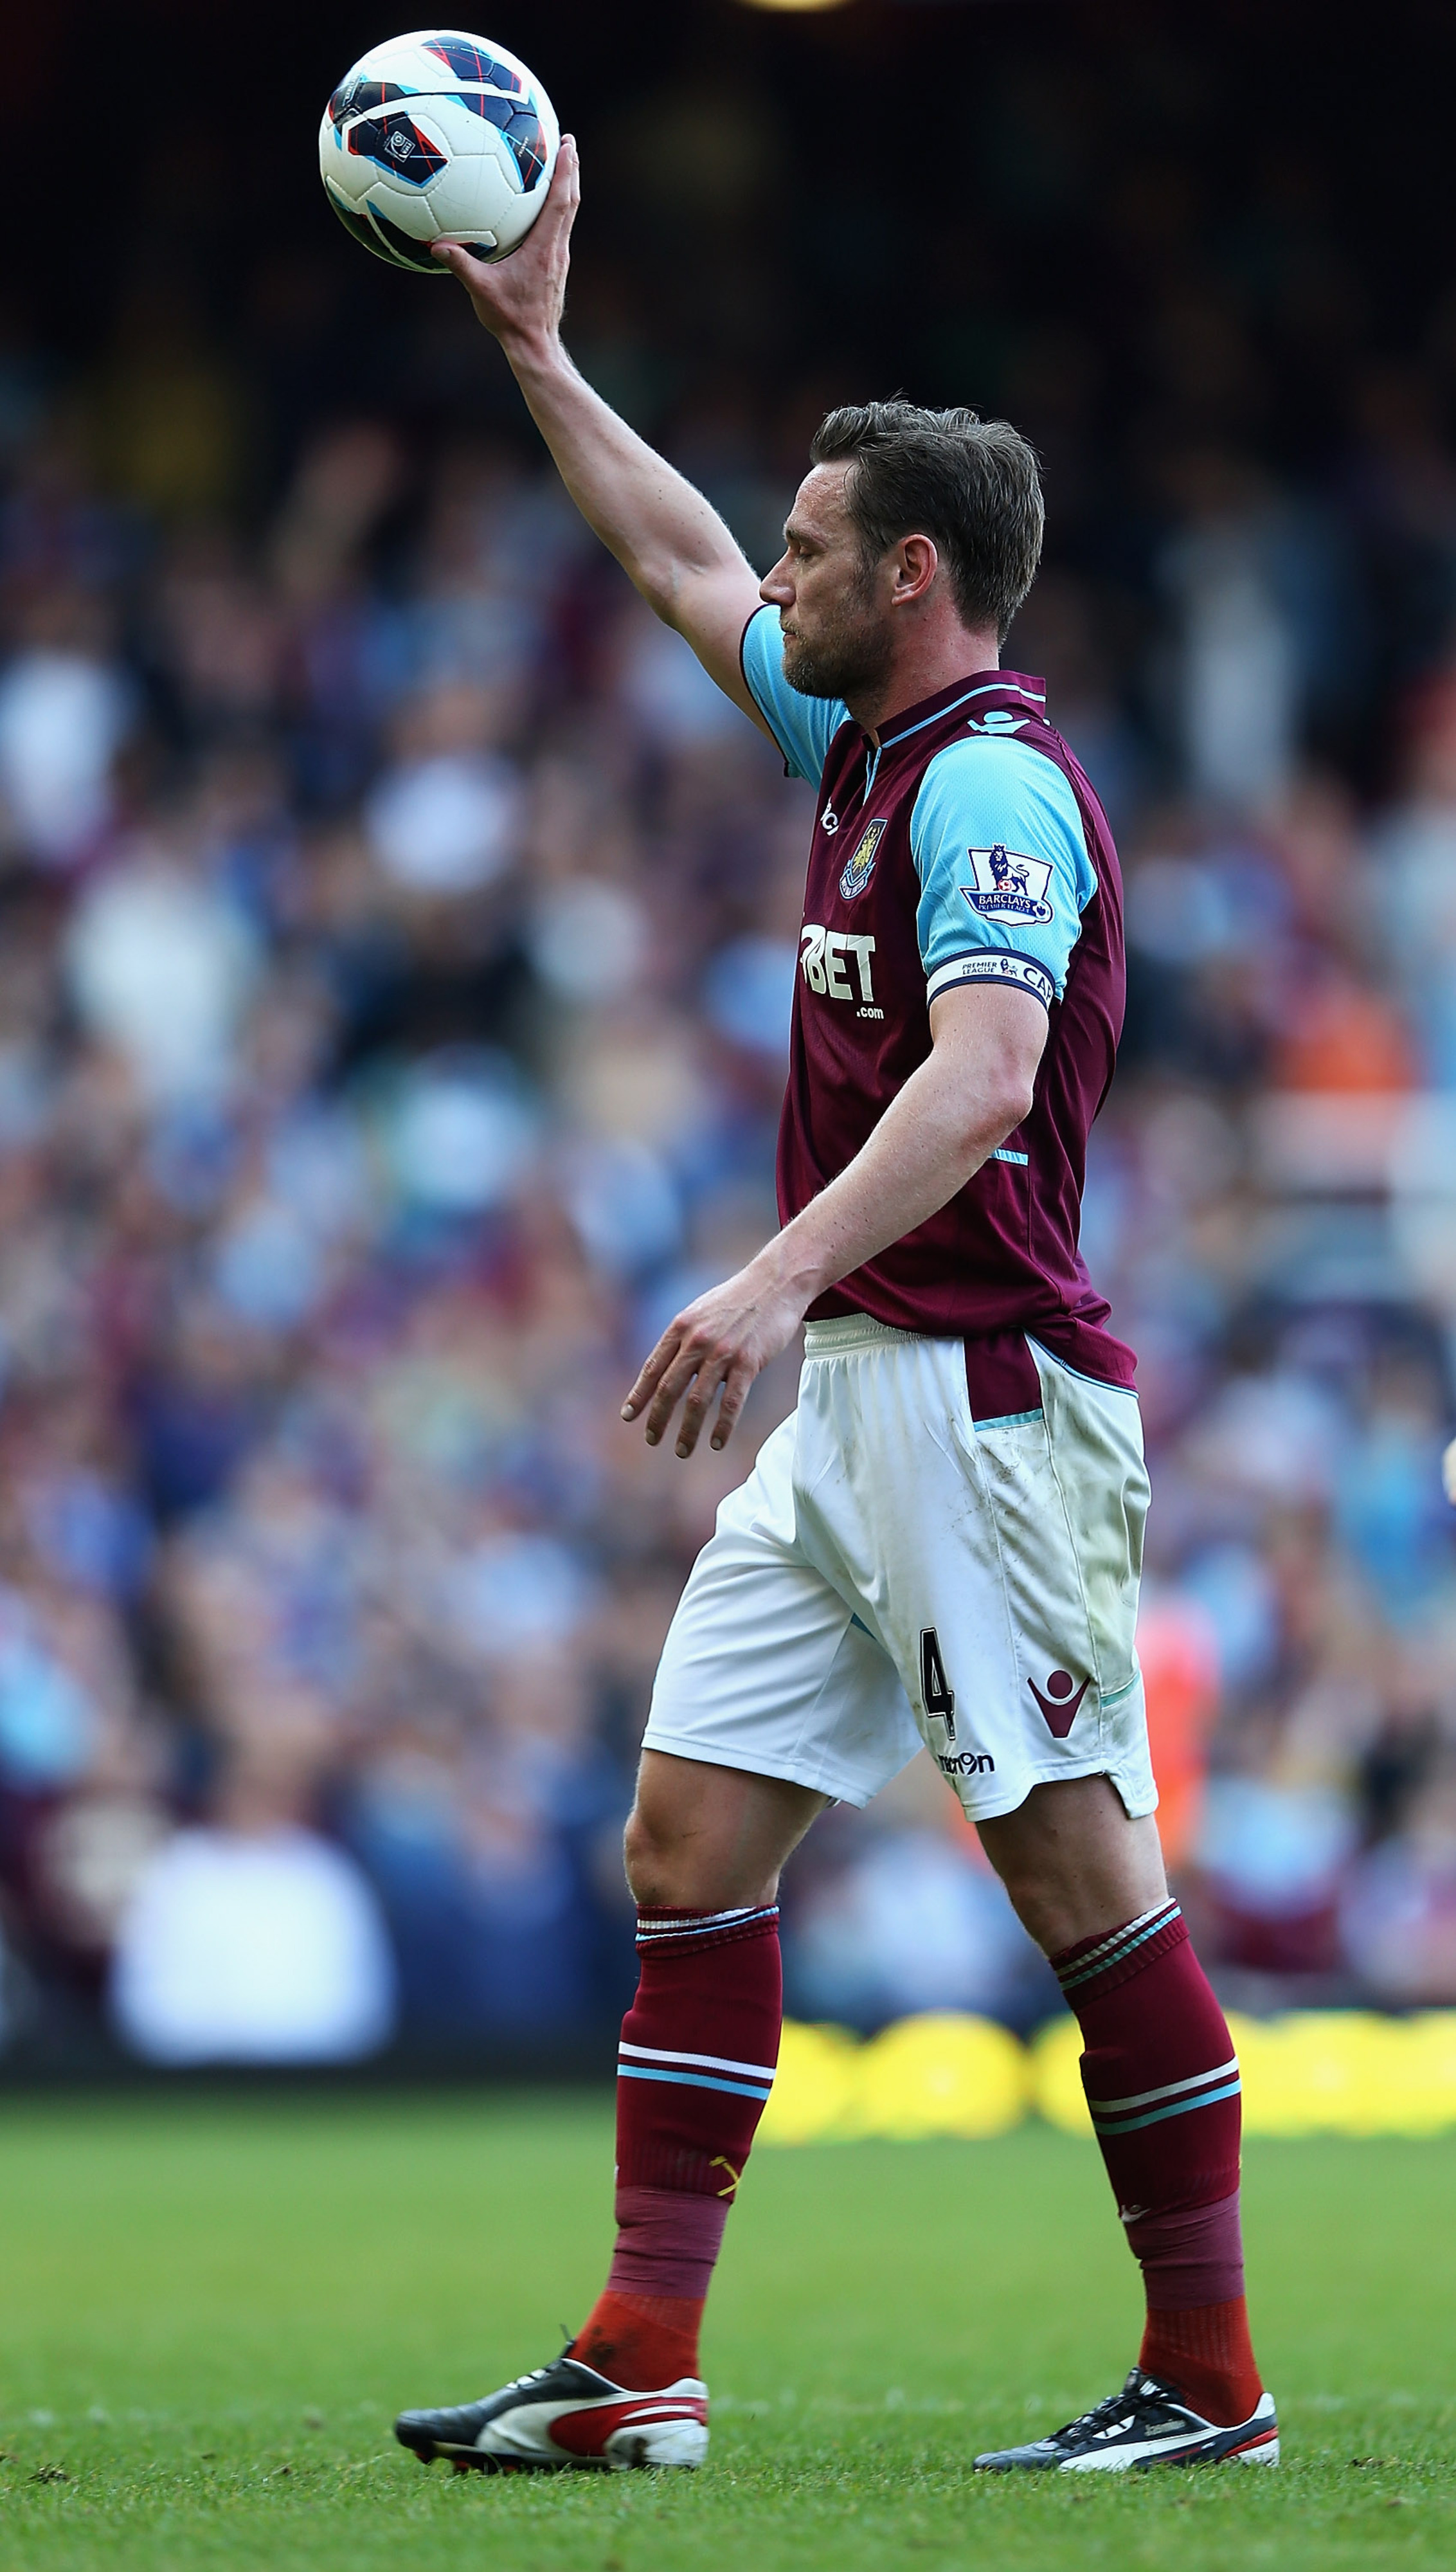 West Ham captain Nolan finished the season with a hat trick